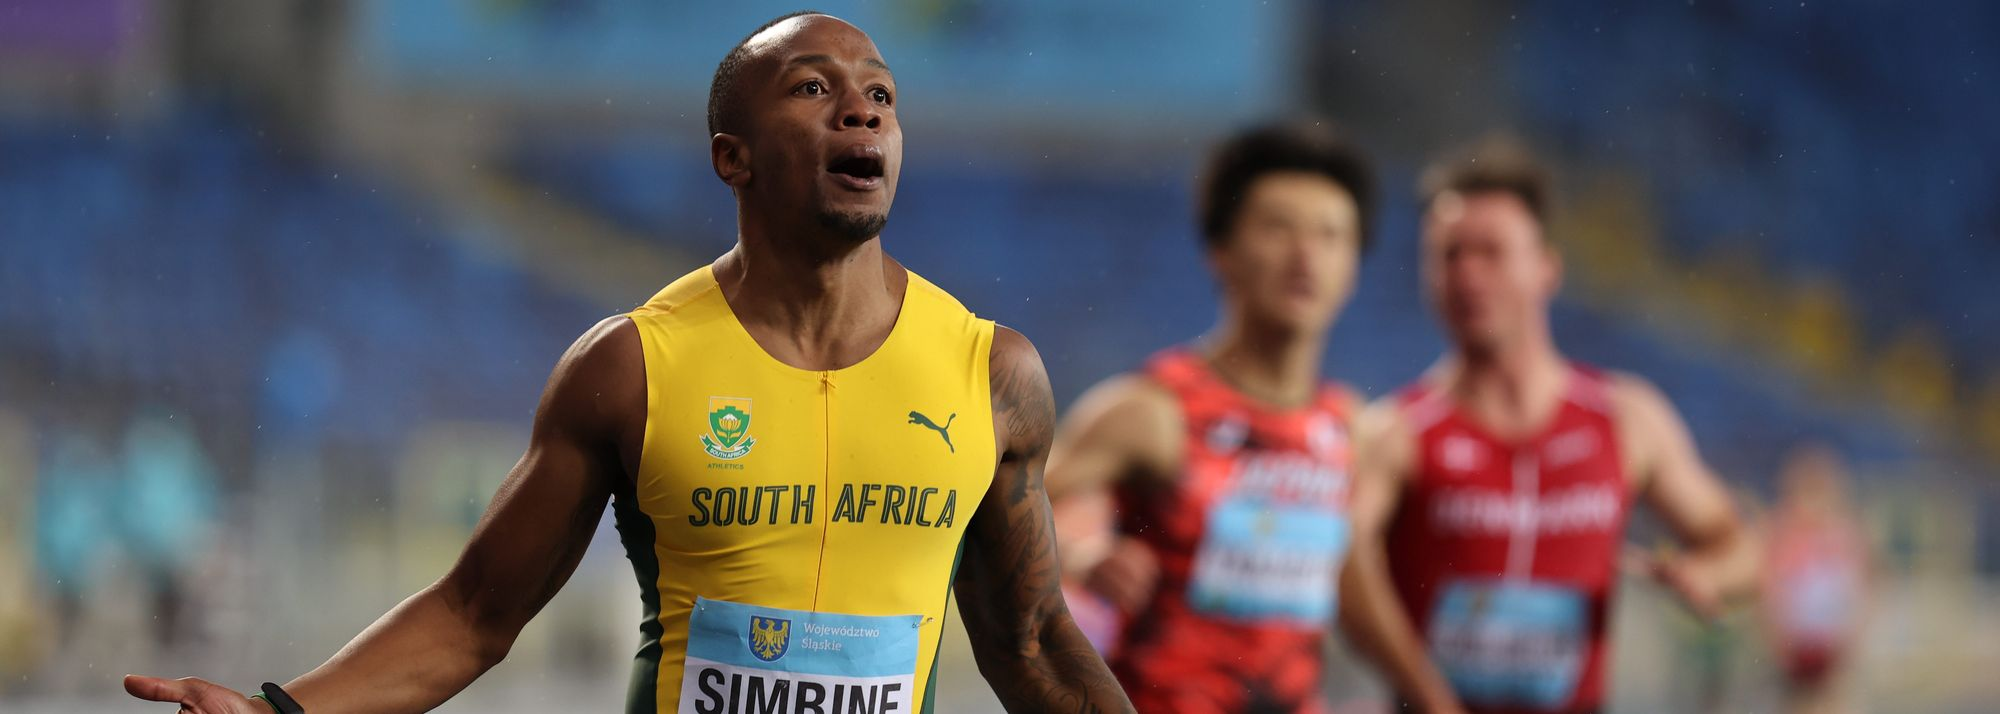 """Here's the thing about Olympic year, something Akani Simbine knows will always be true. """"Everybody comes out fast,"""" he says. Everyone is ready."""""""